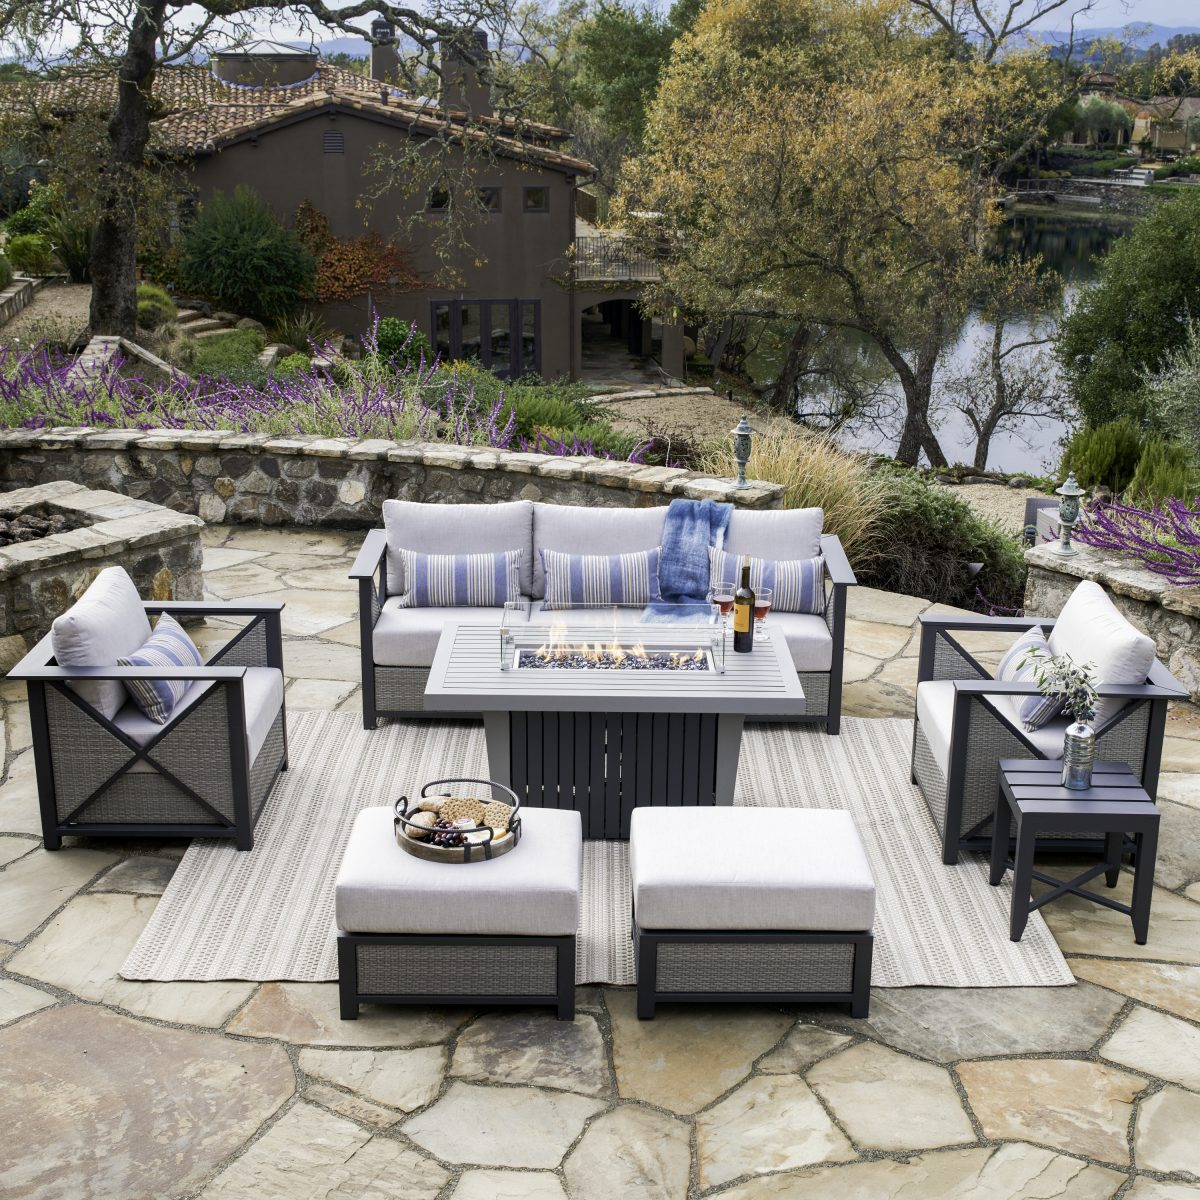 5 backyard must haves - seating